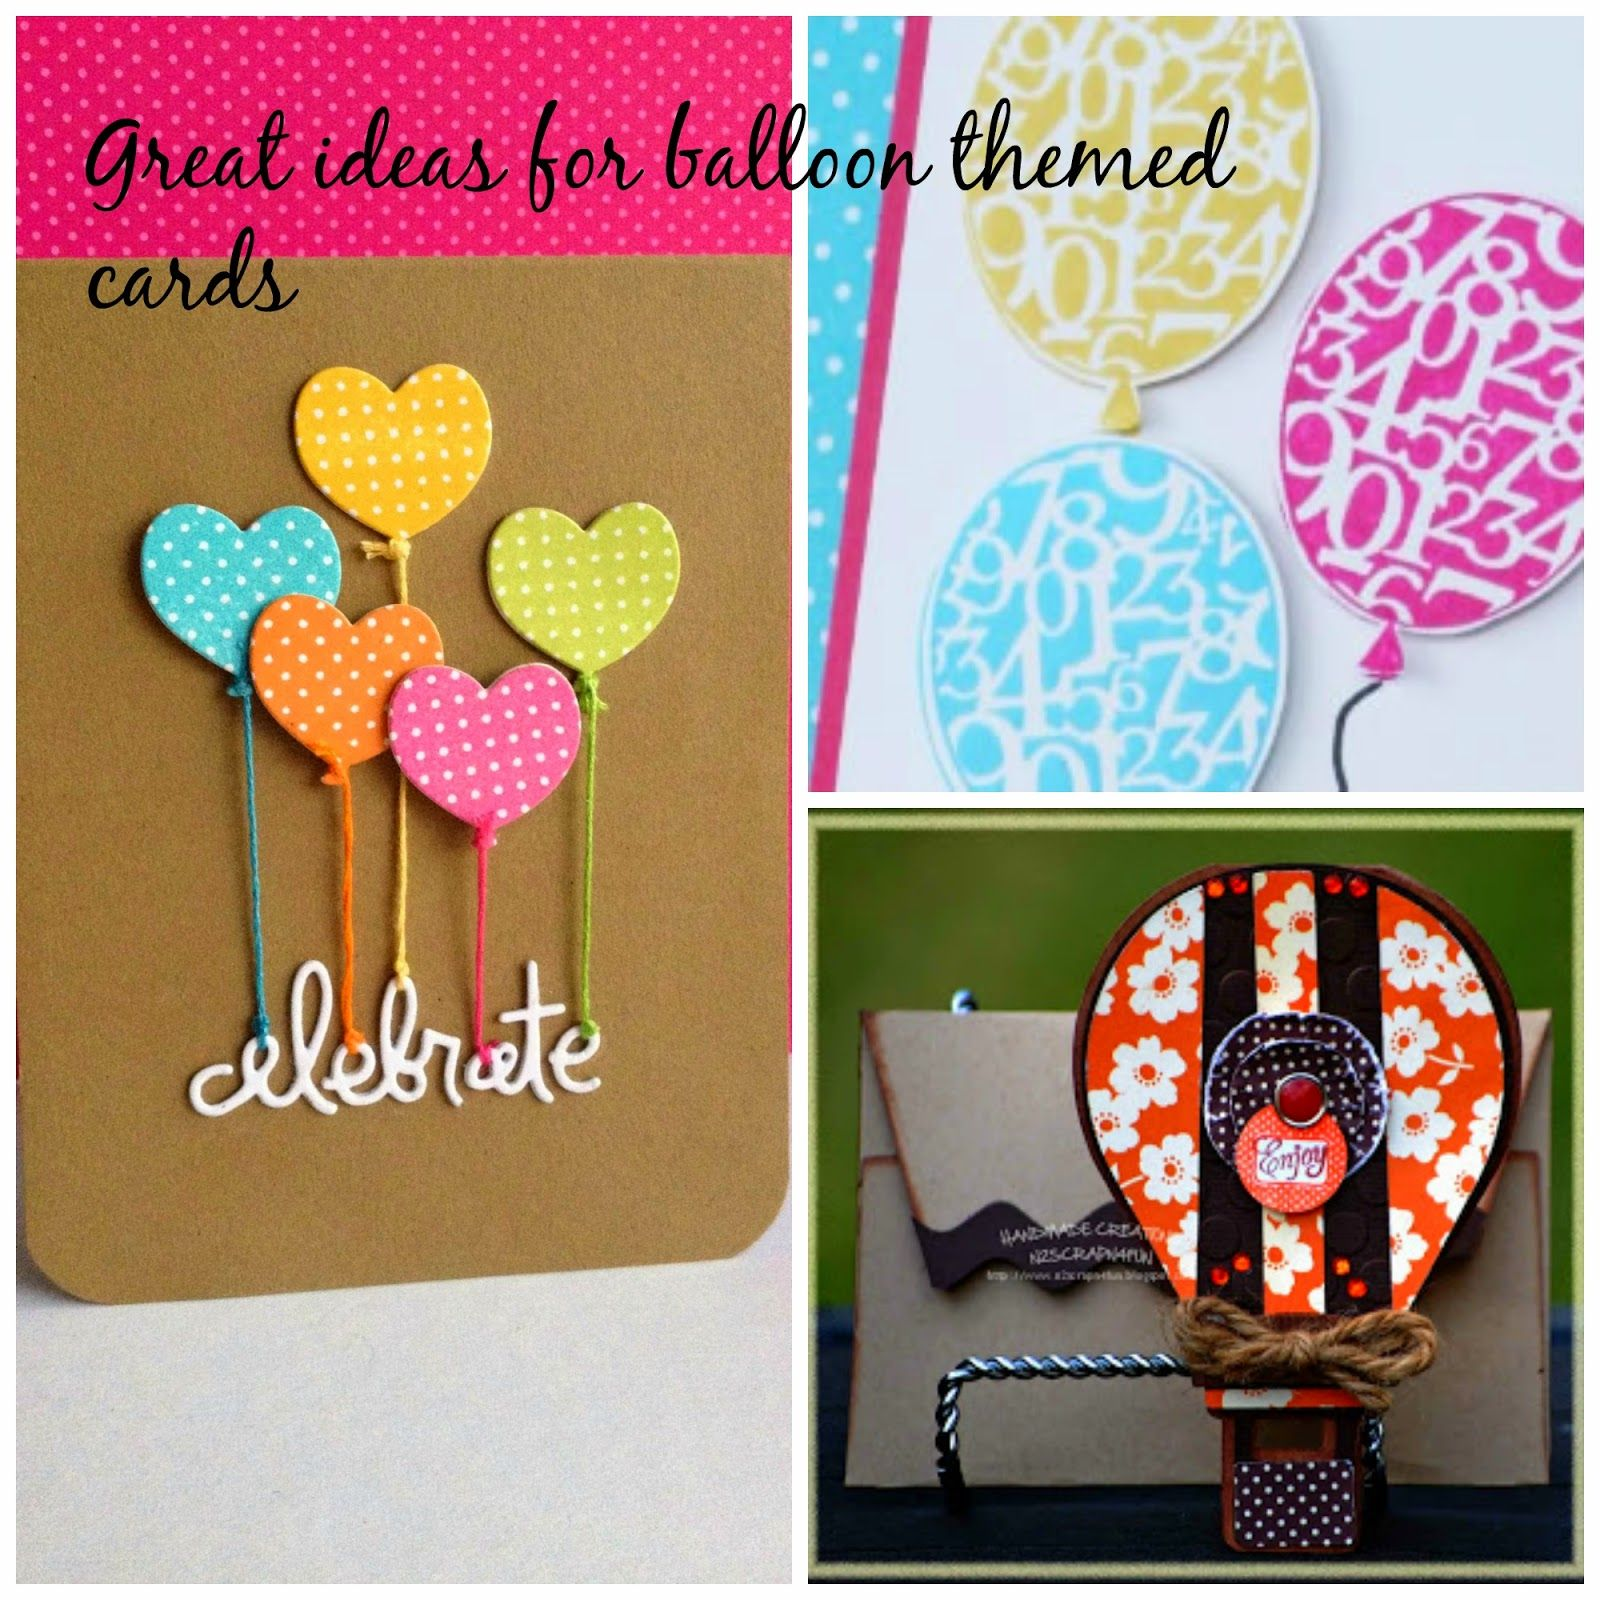 5 great ideas for cute and easy balloon themed handmade greeting 5 great ideas for cute and easy balloon themed handmade greeting cards kristyandbryce Gallery